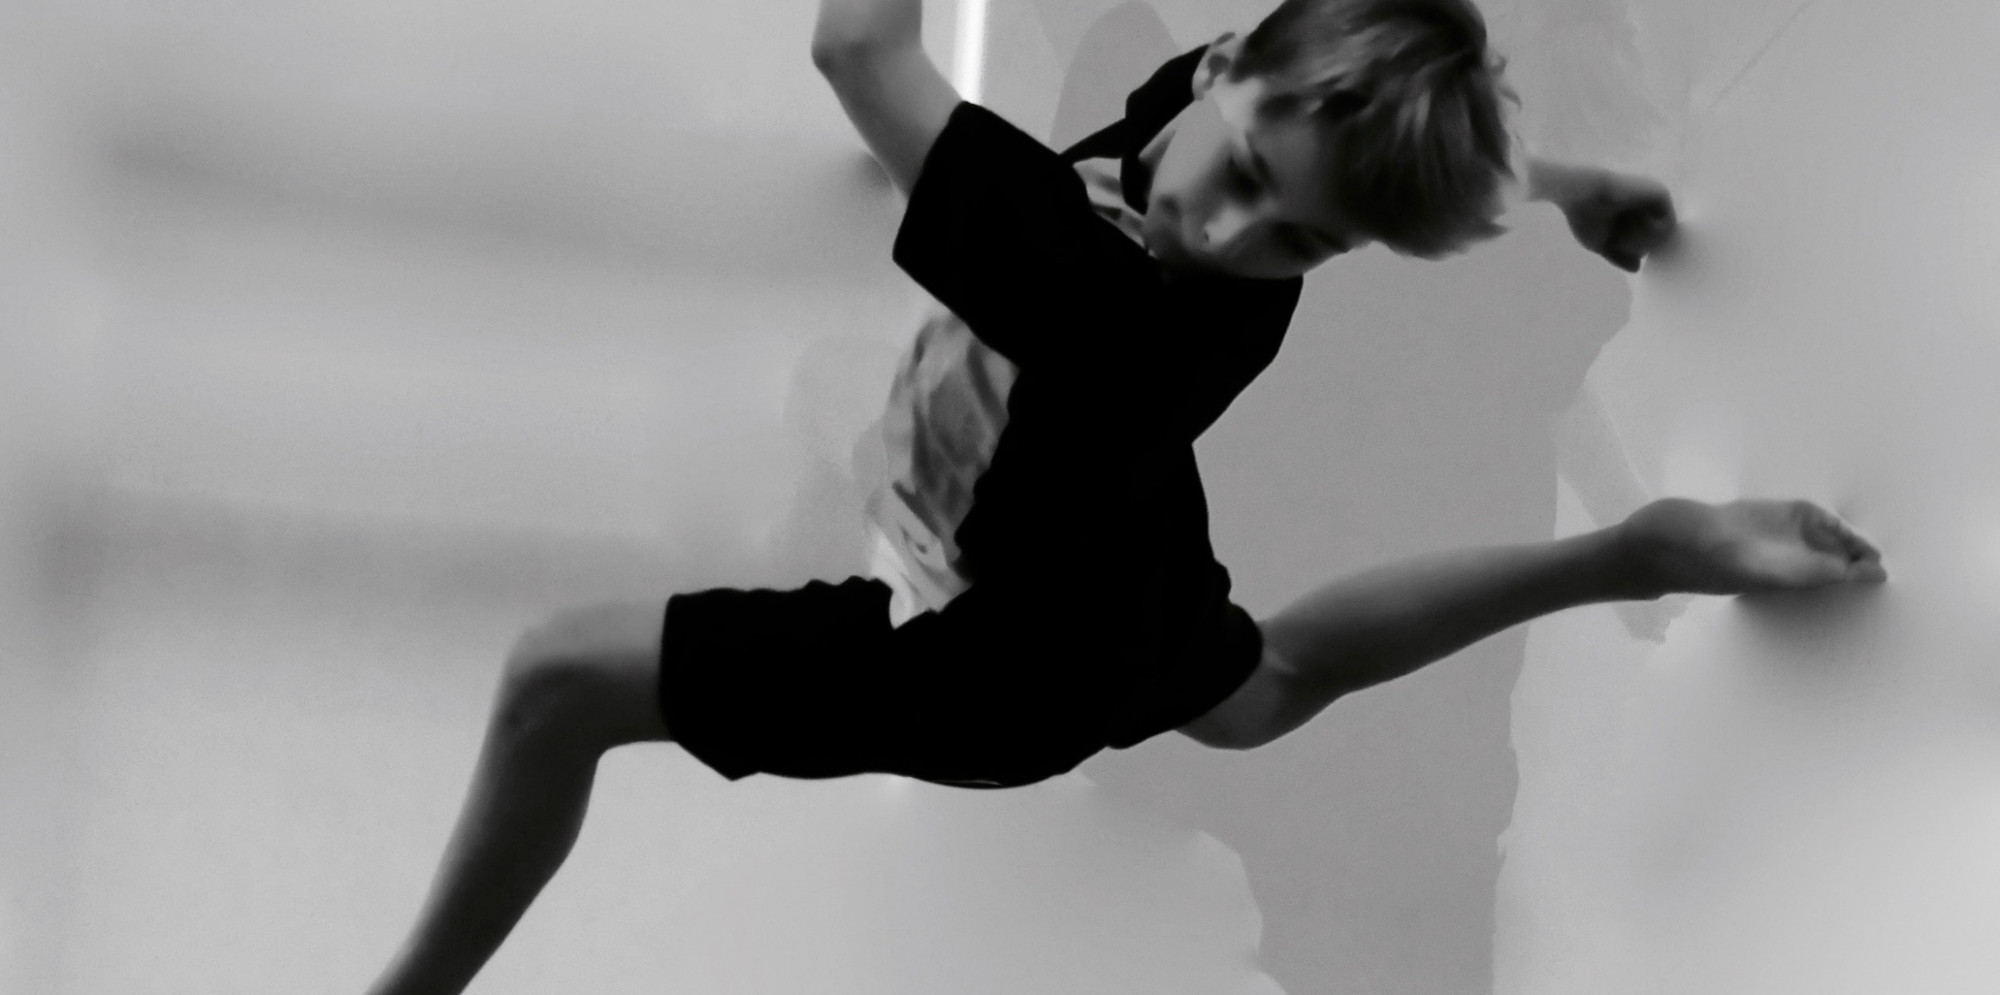 cool picture of a boy in black and white doing a flip